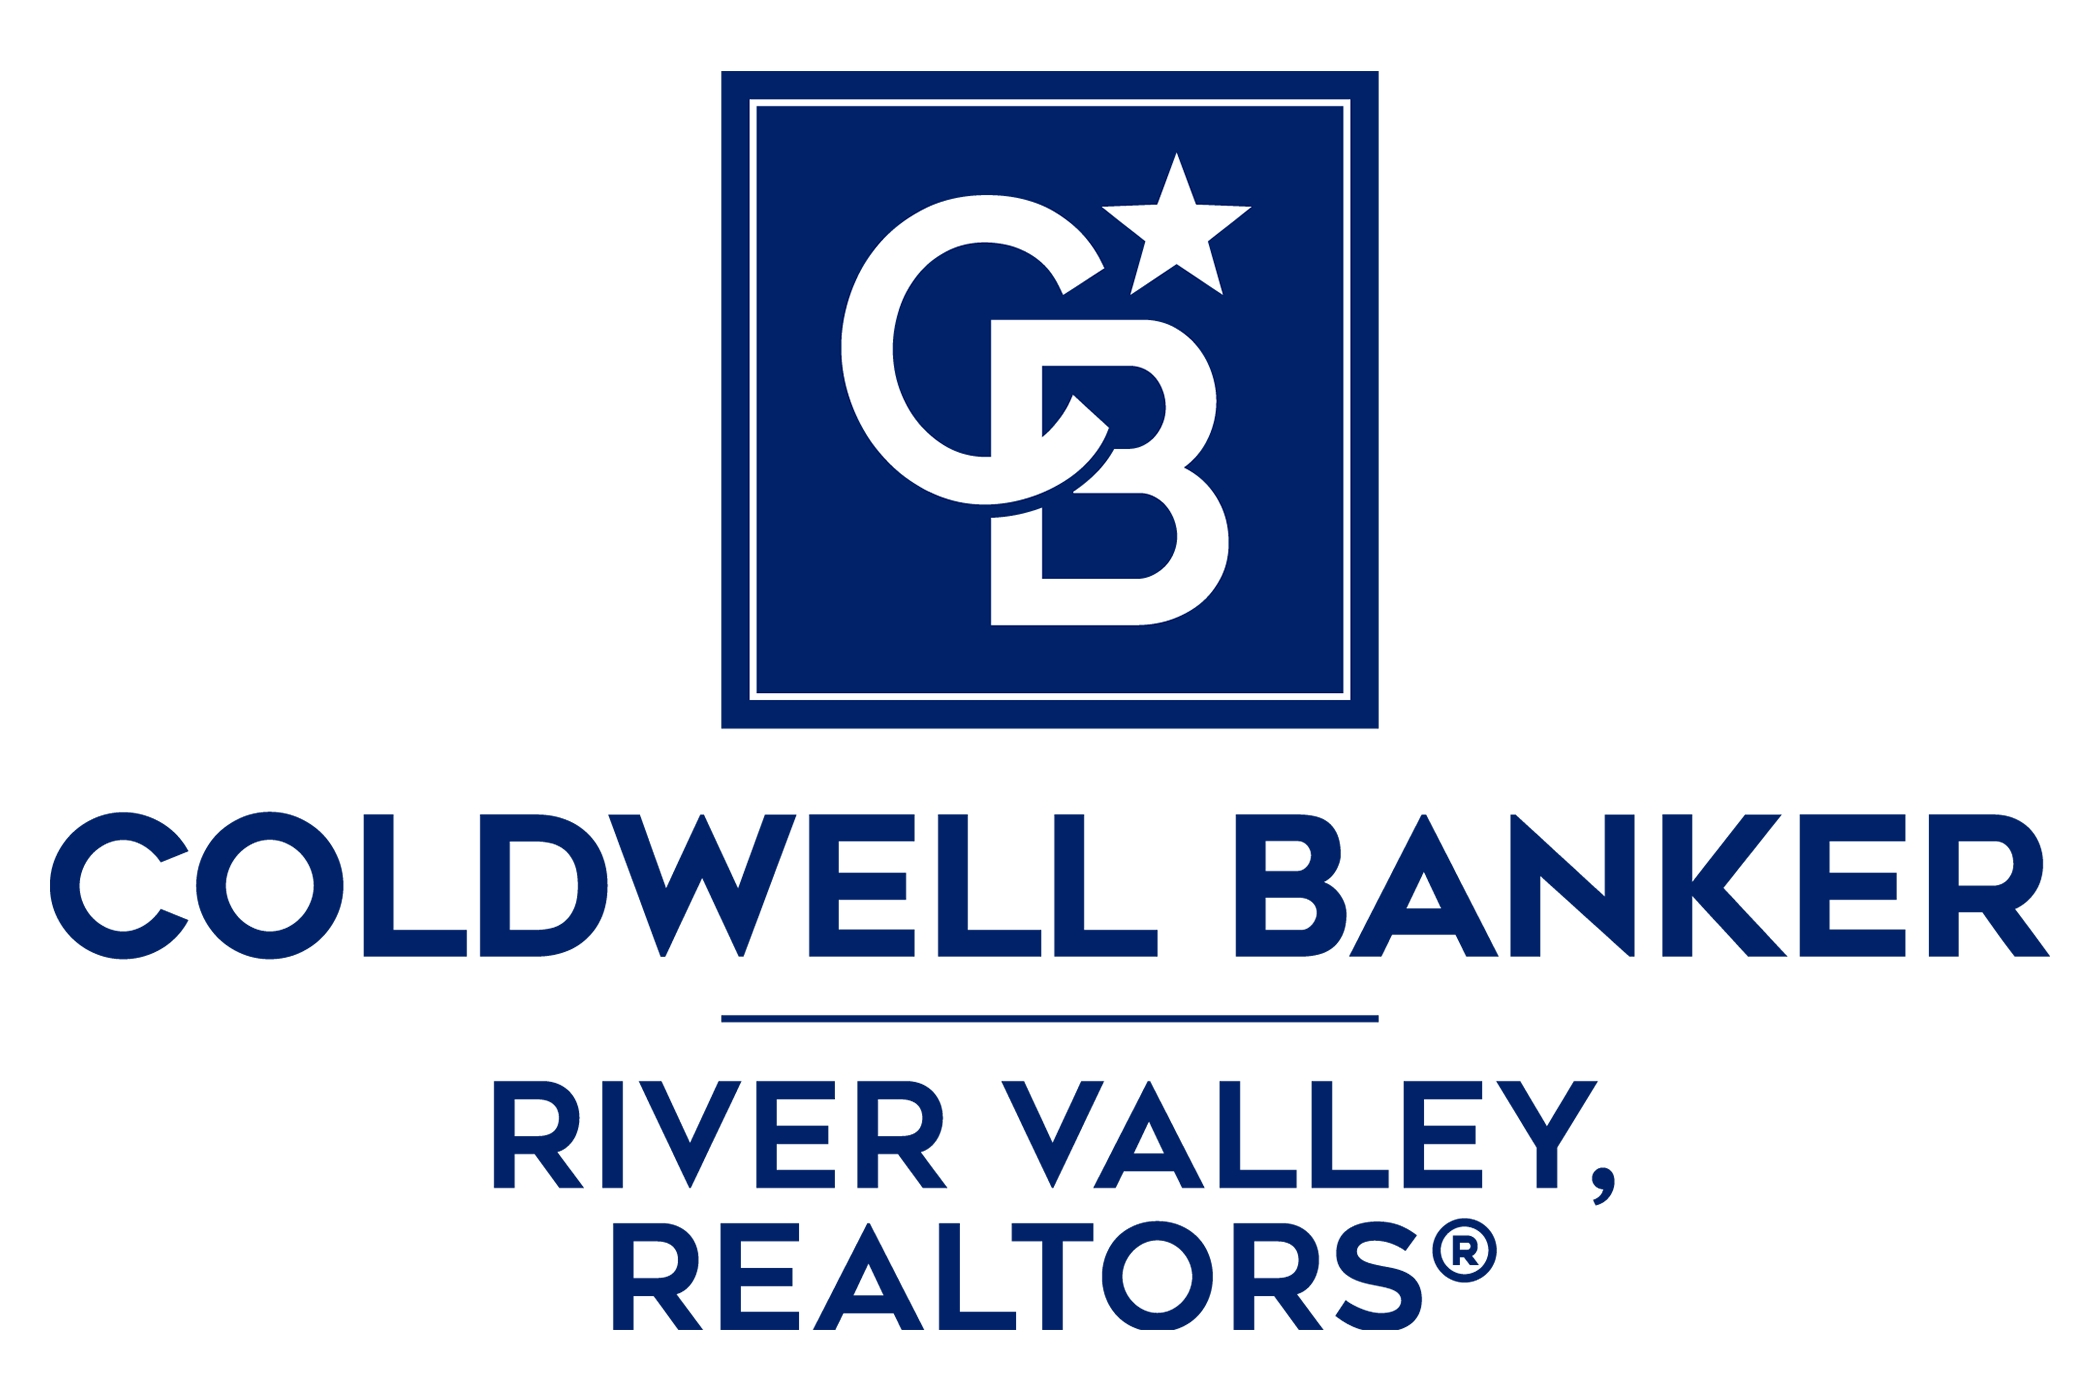 Todd Savage - Coldwell Banker River Valley Realtors